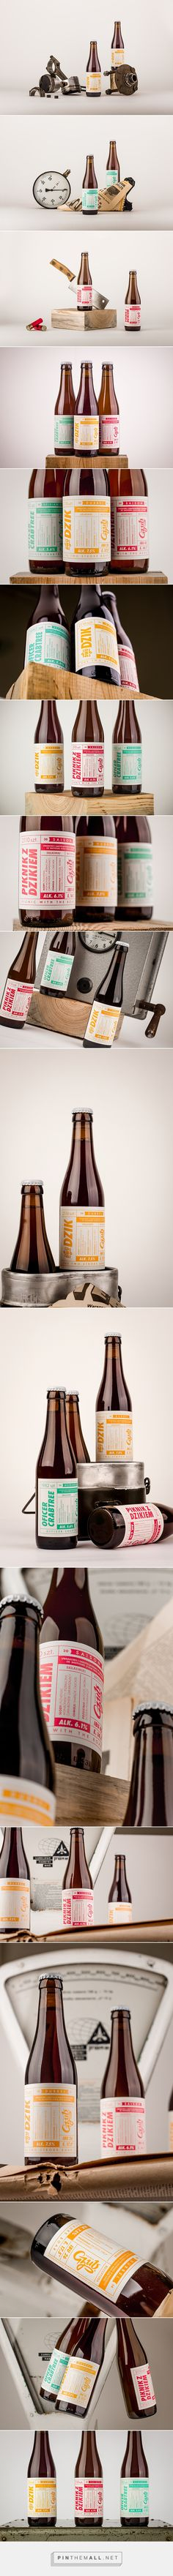 Gzub Craft Brewery - Beer Design by Redkroft